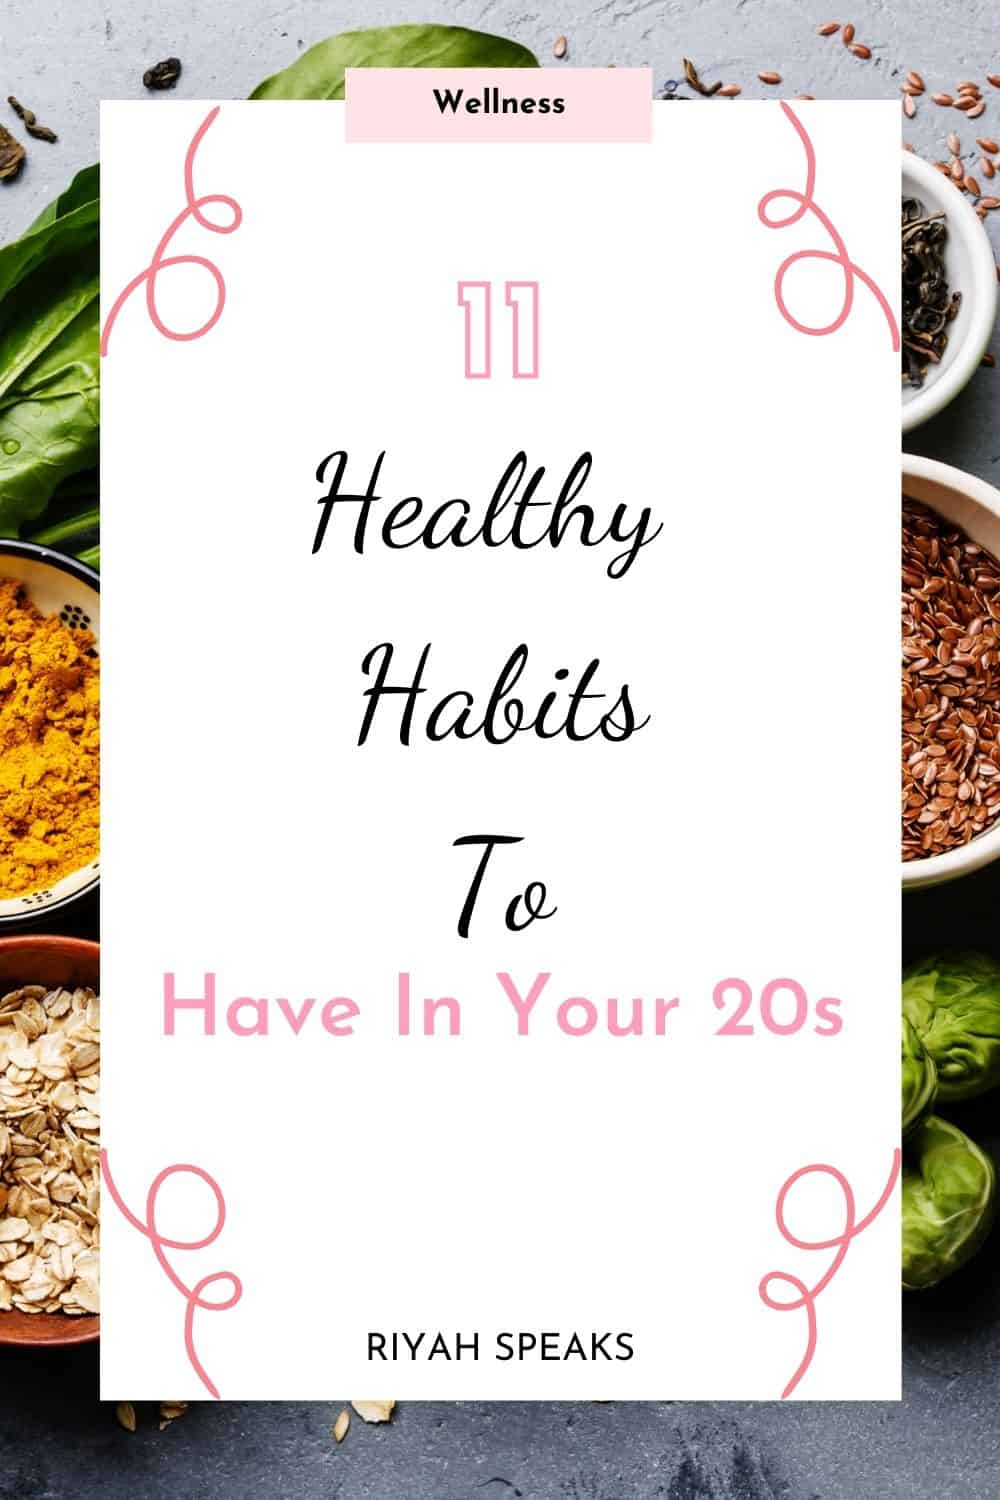 11 Immediate Healthy Habits To Have in Your 20s